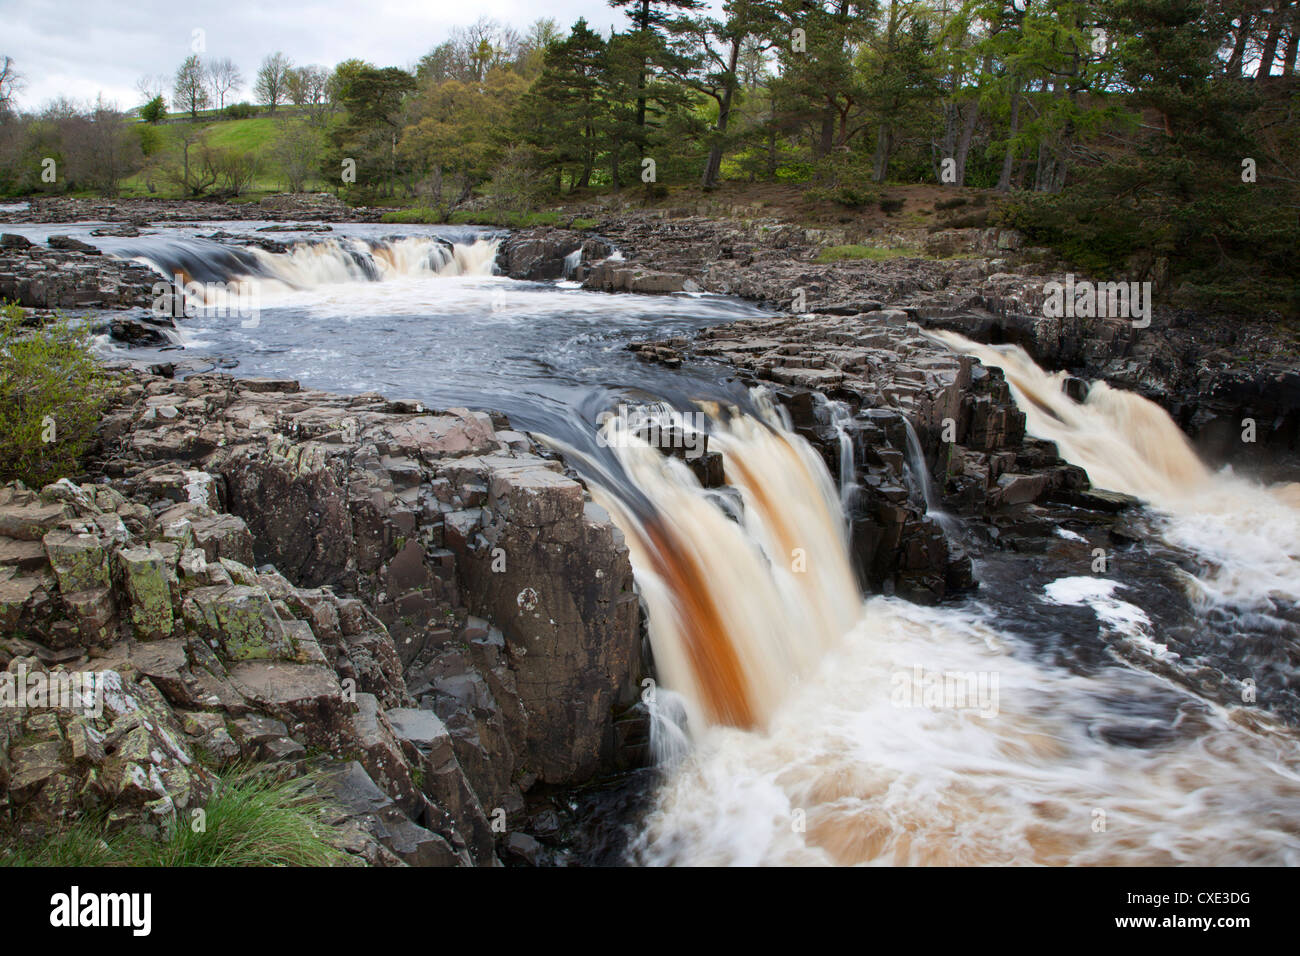 Low Force in Upper Teesdale, County Durham, England - Stock Image